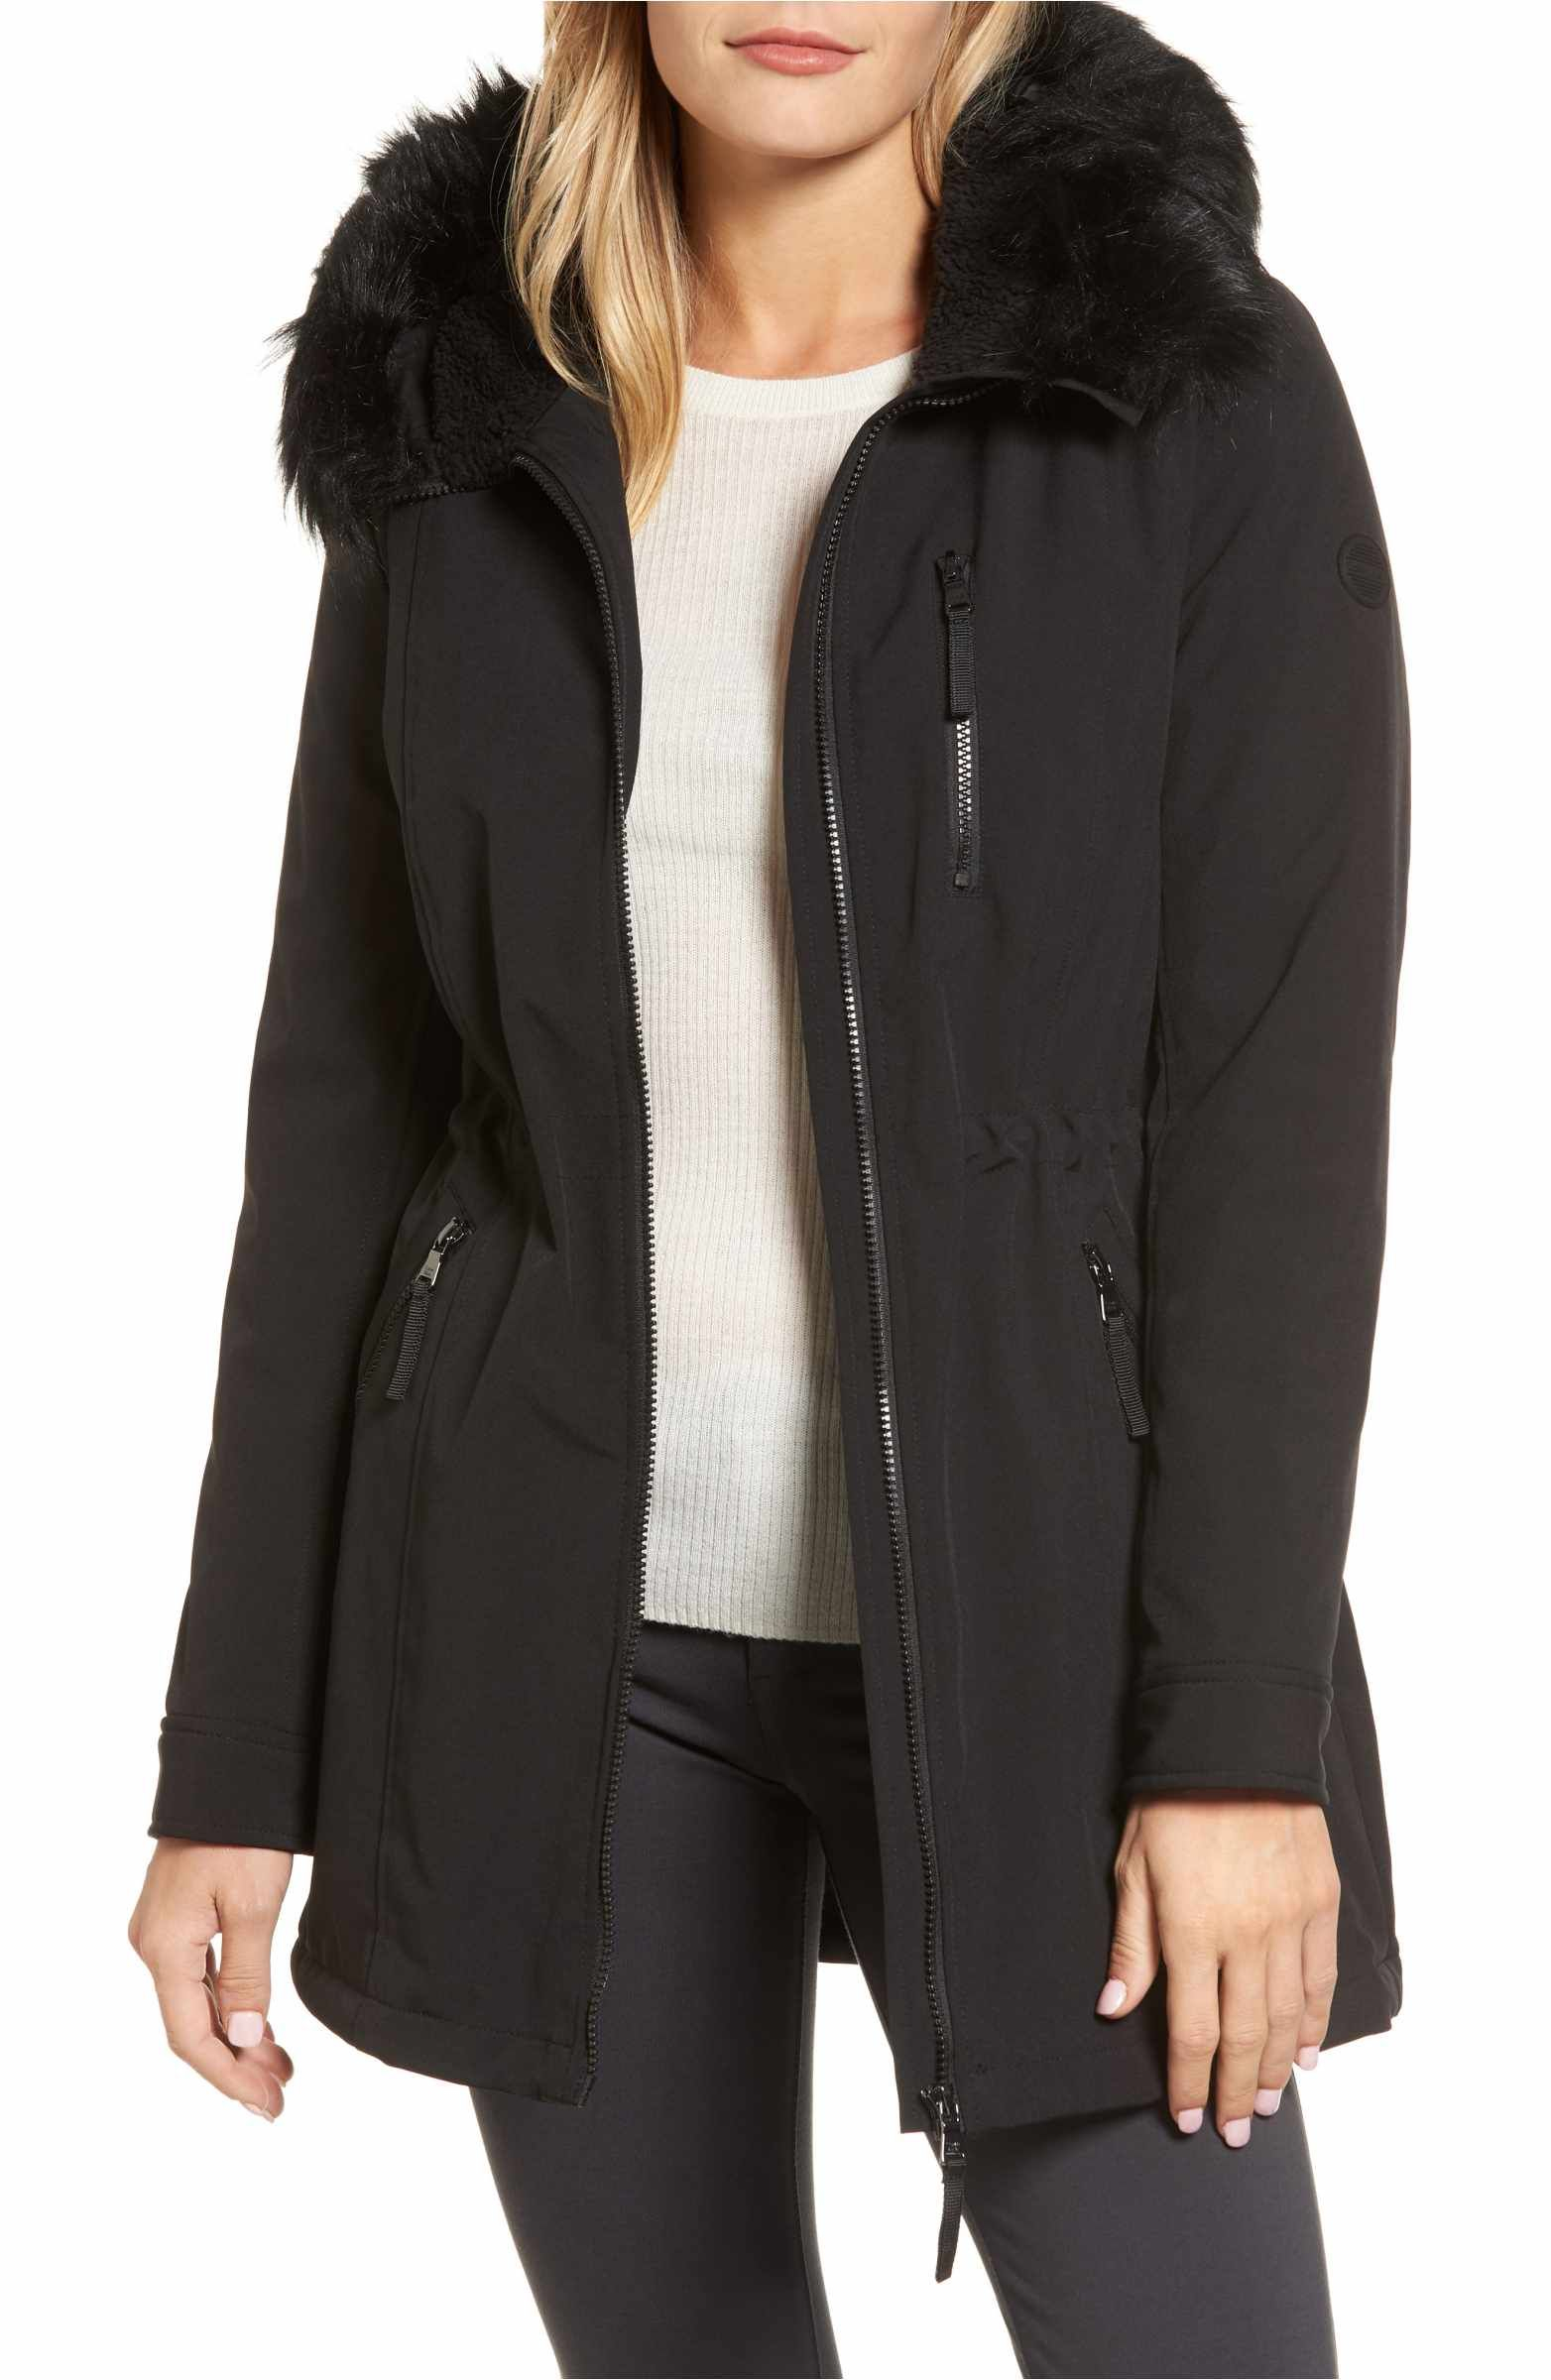 Adidas Originals Long Parka Hooded Down Coat and 34 similar